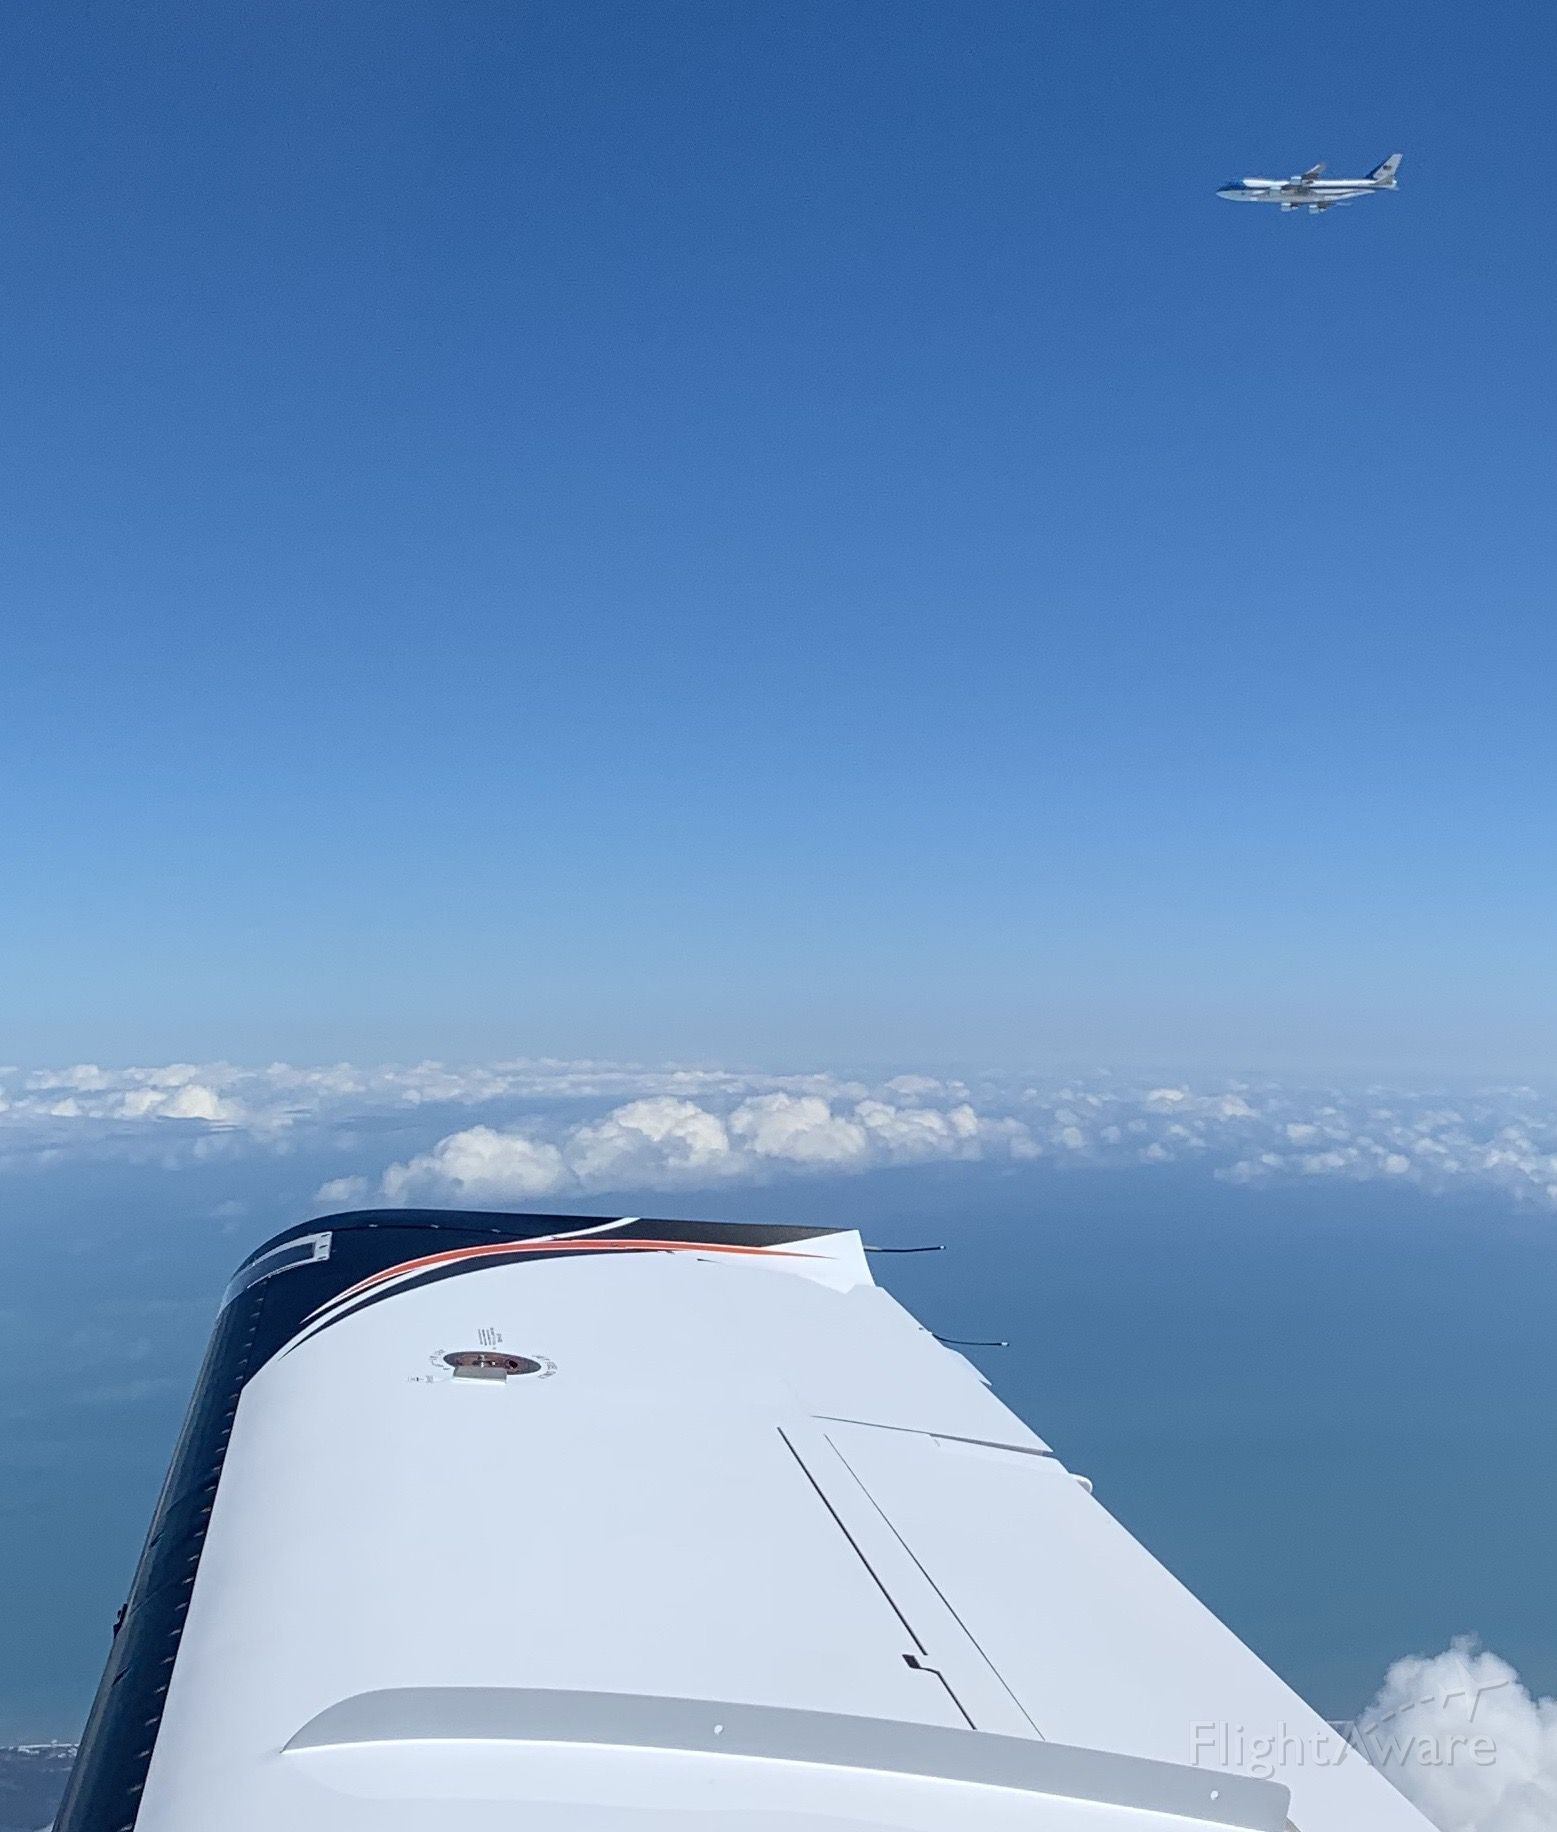 Socata TBM-850 (N37TC) - AF1 passing off my right side enroute from pbi to dab on 2/16/20 around 12:40pm